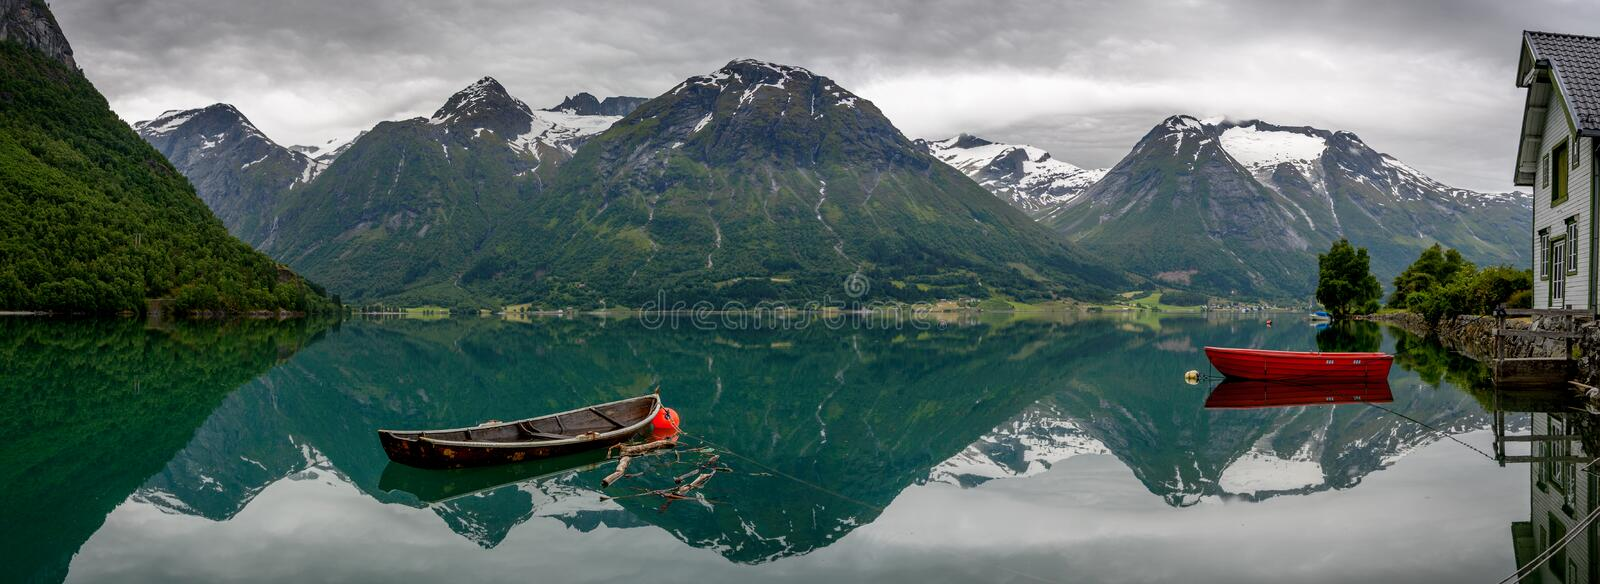 Boats and reflection in the water in panorama stock photography